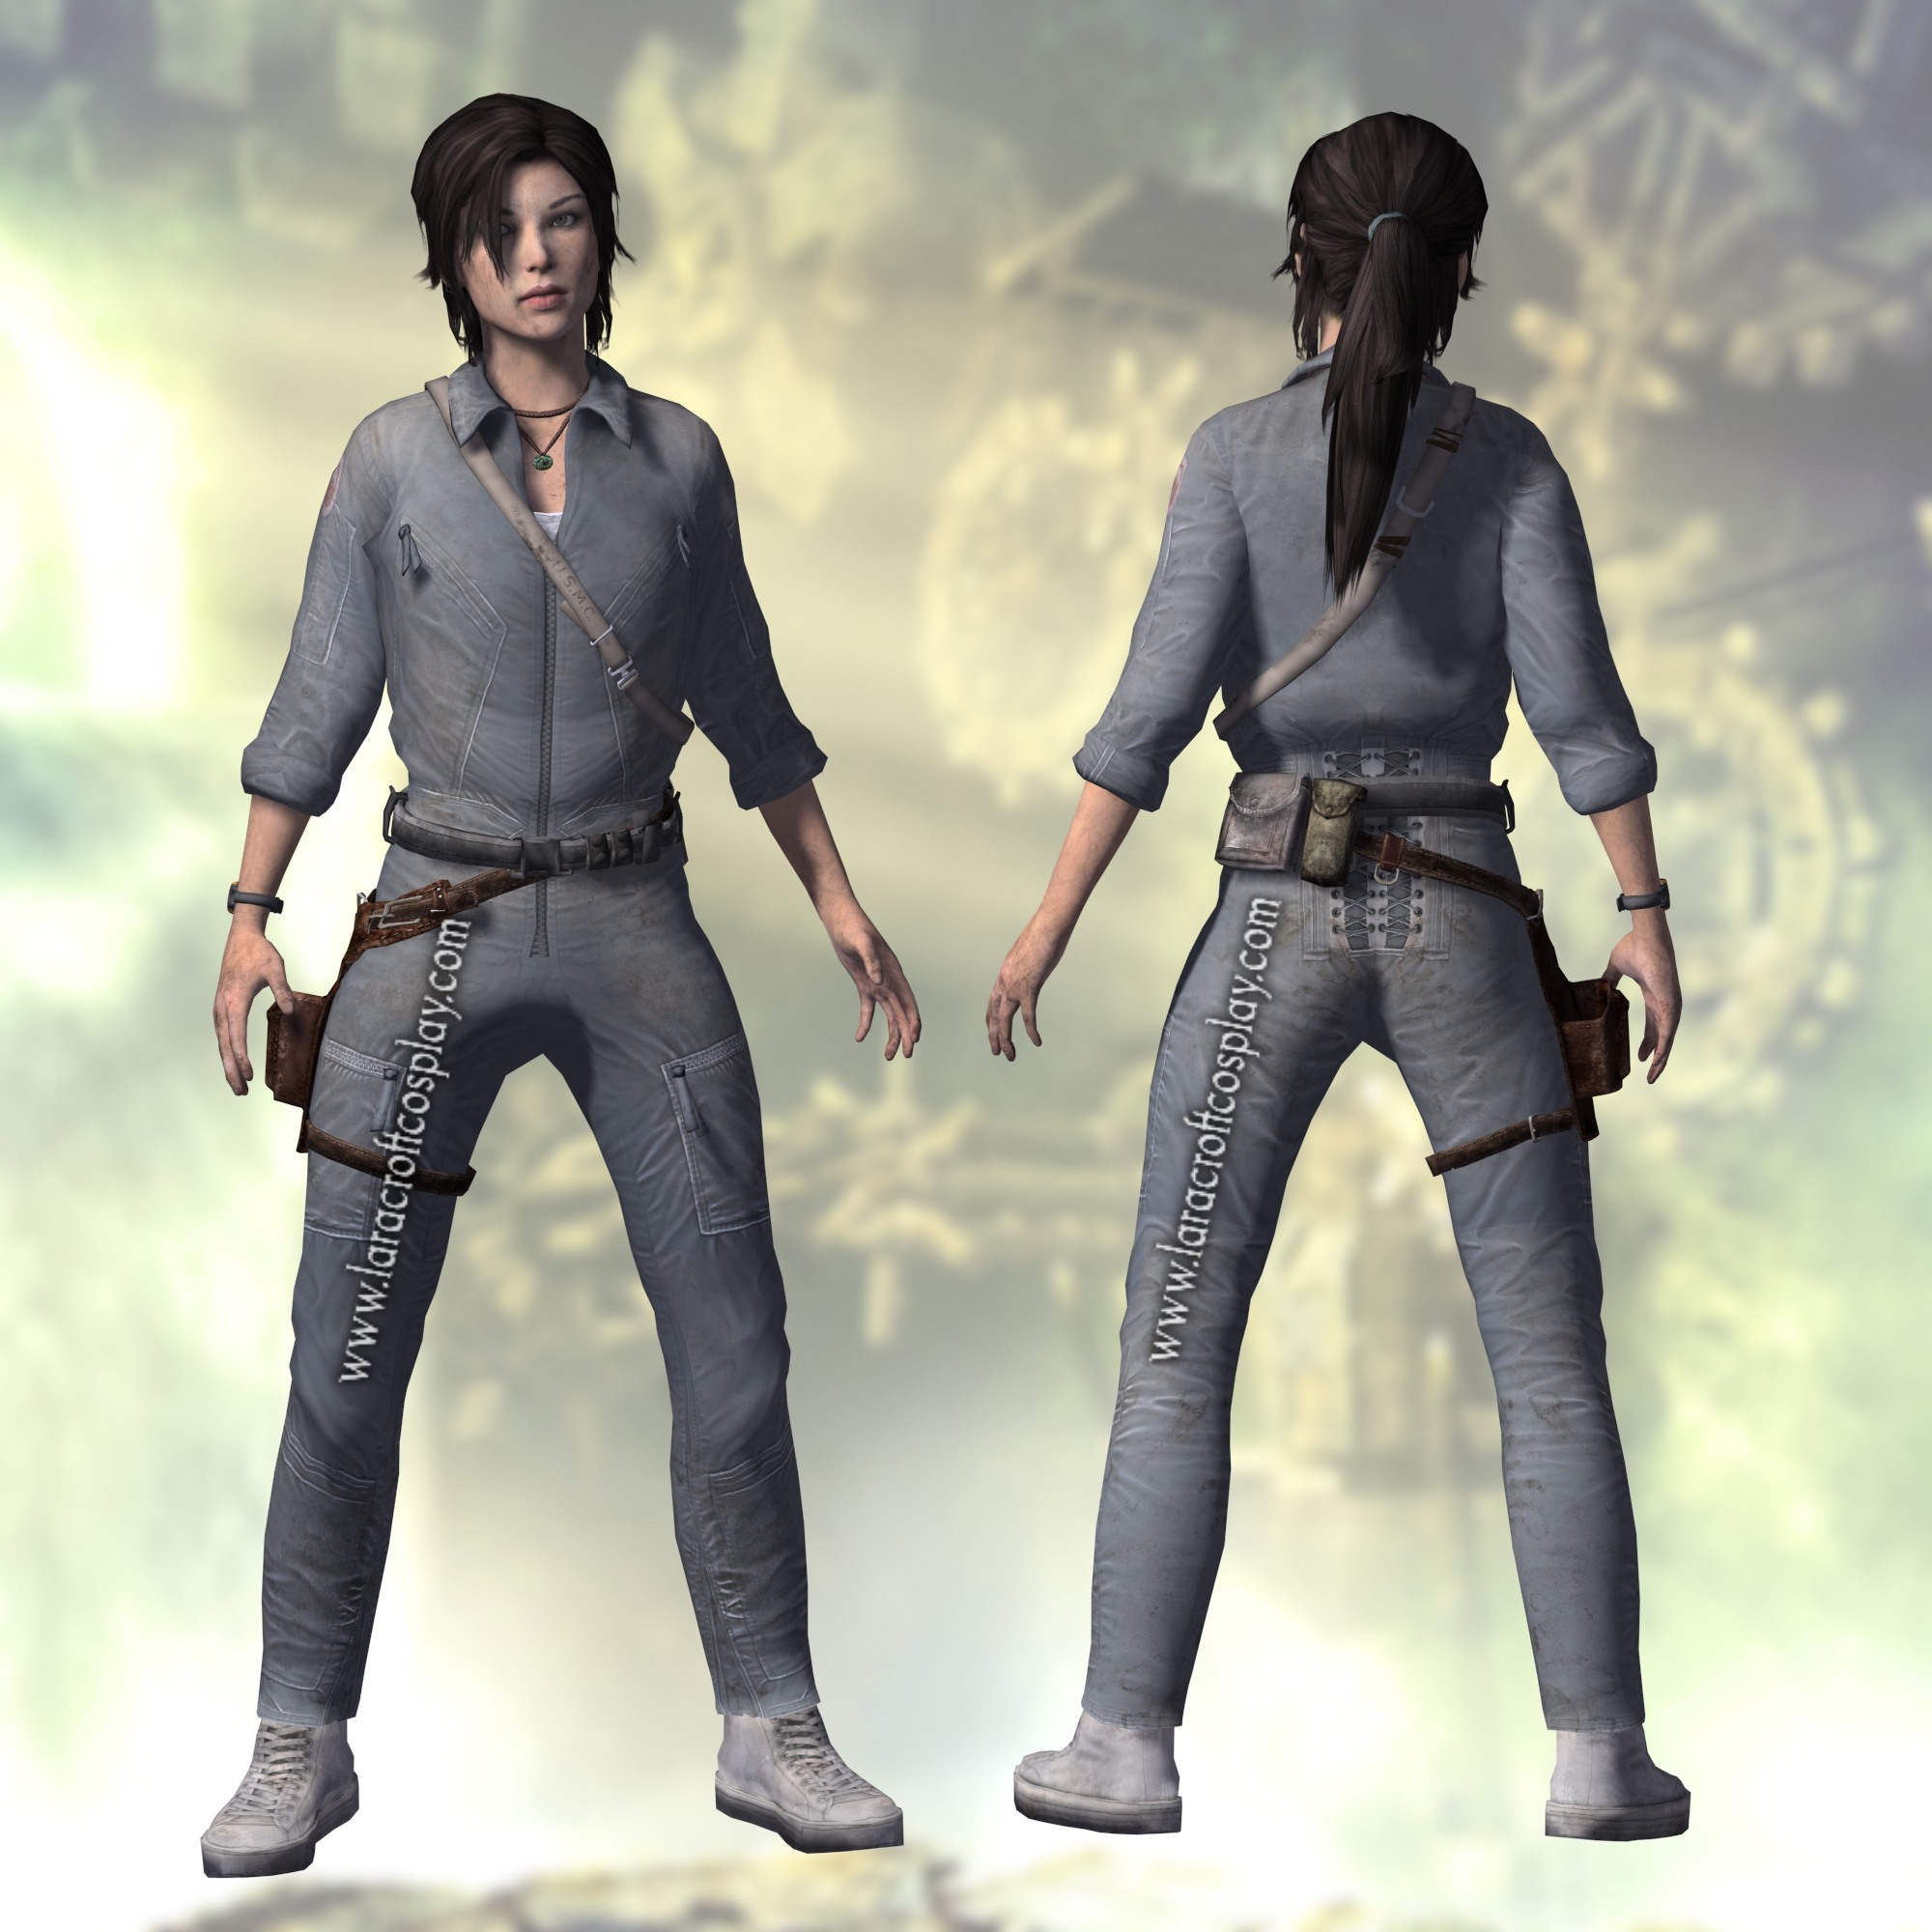 Tomb raider 2023 outfits sexy picture